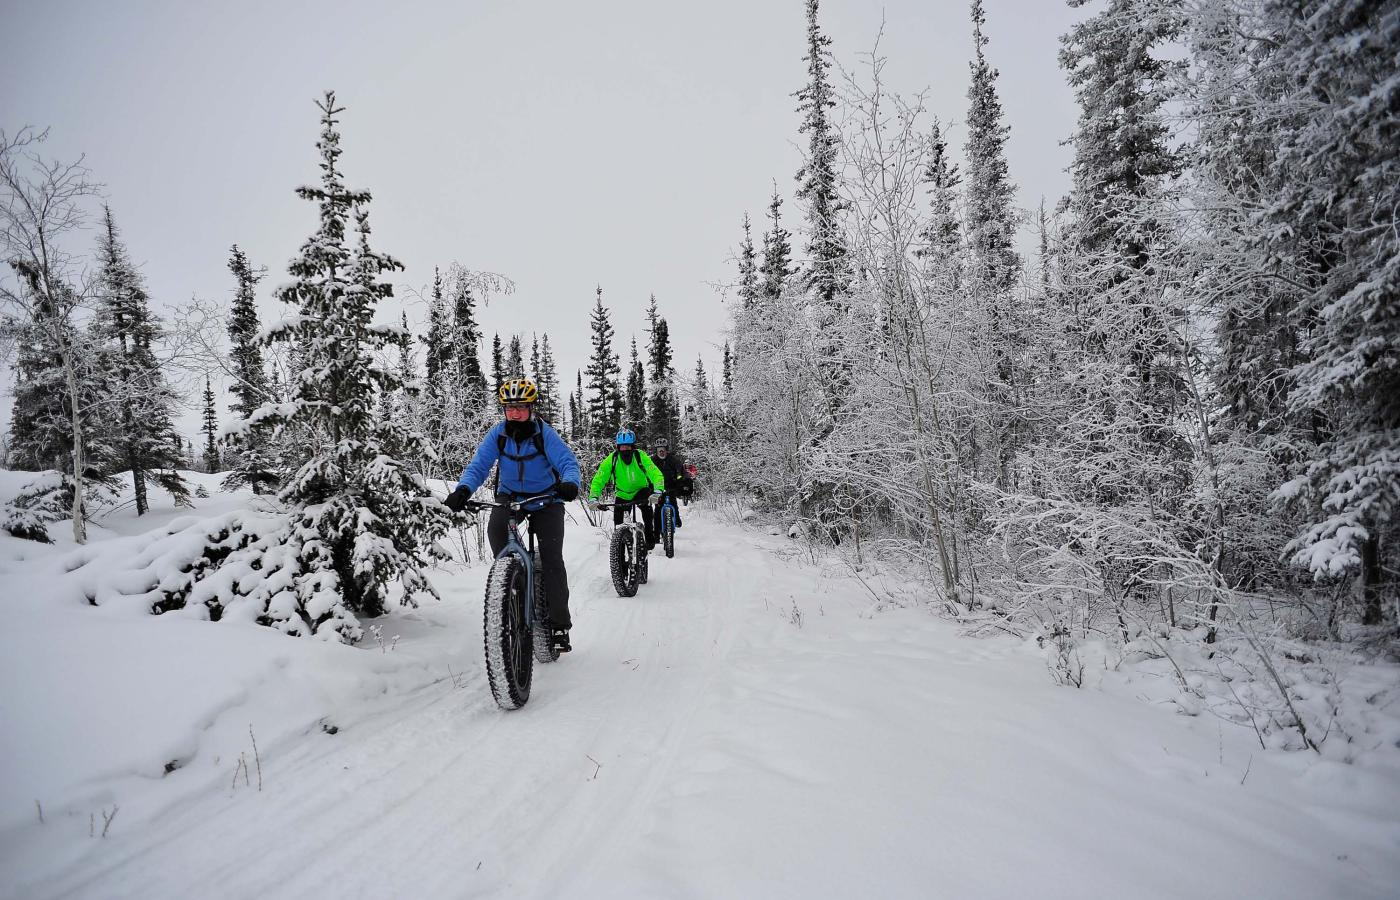 Winter fat-biking in Canada's Northwest Territories is quickly becoming one of the most exciting ways to get out and explore the wilderness